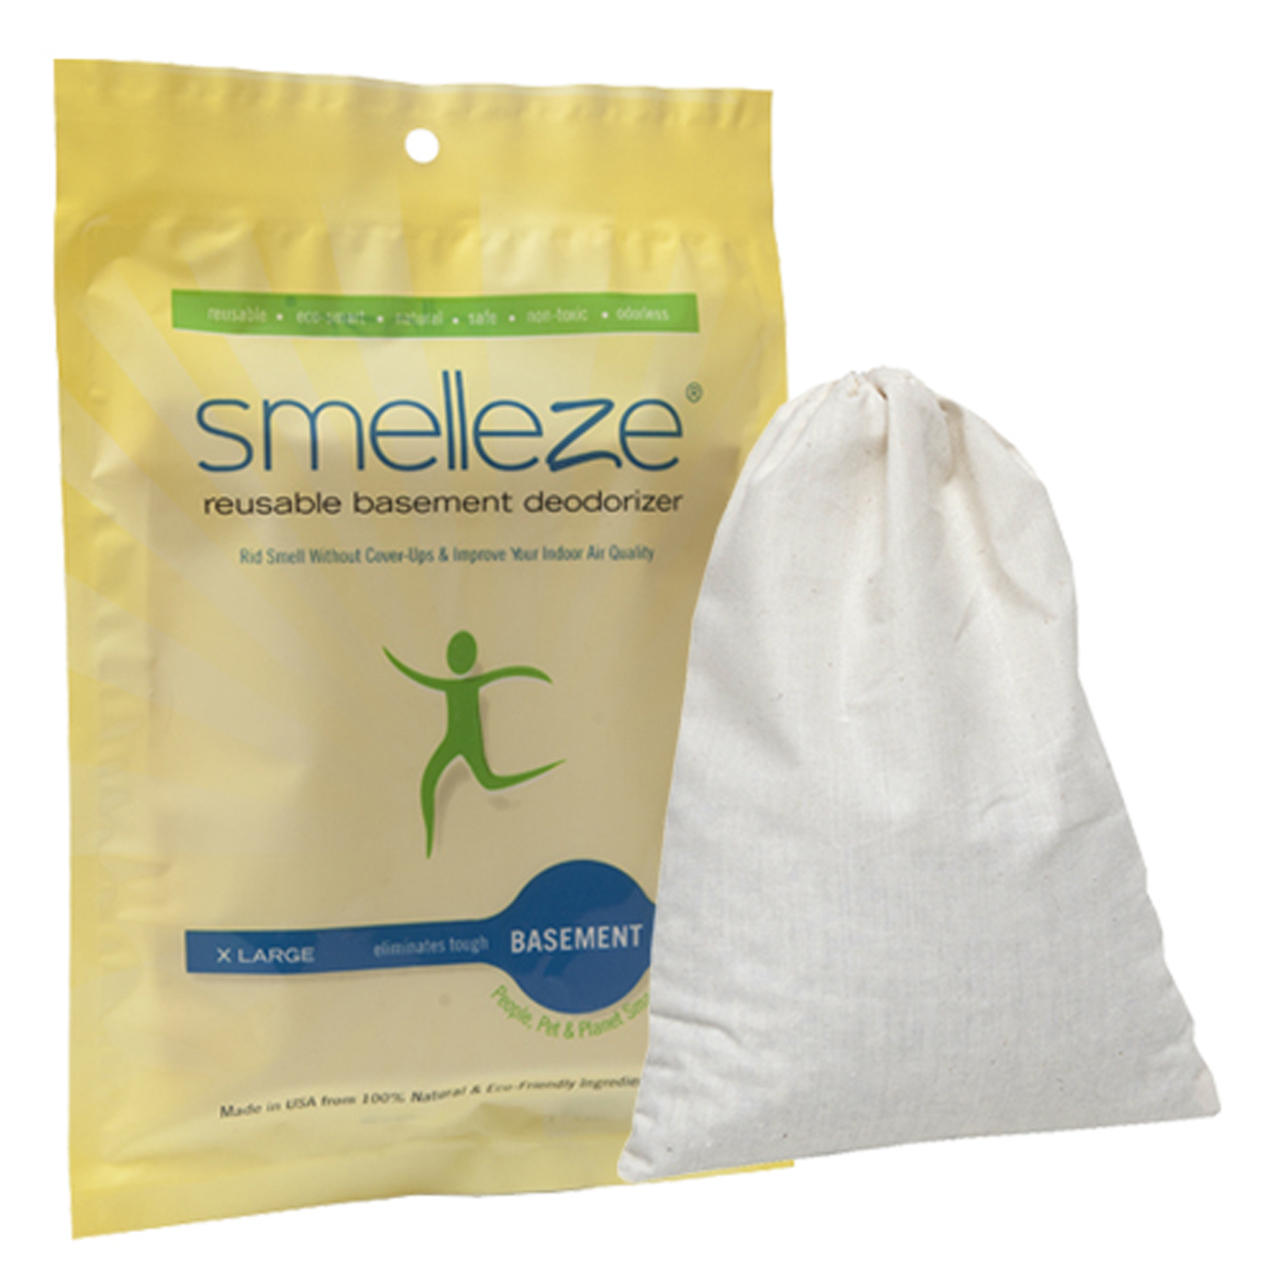 New Smelleze Basement Deodorizer Pouch